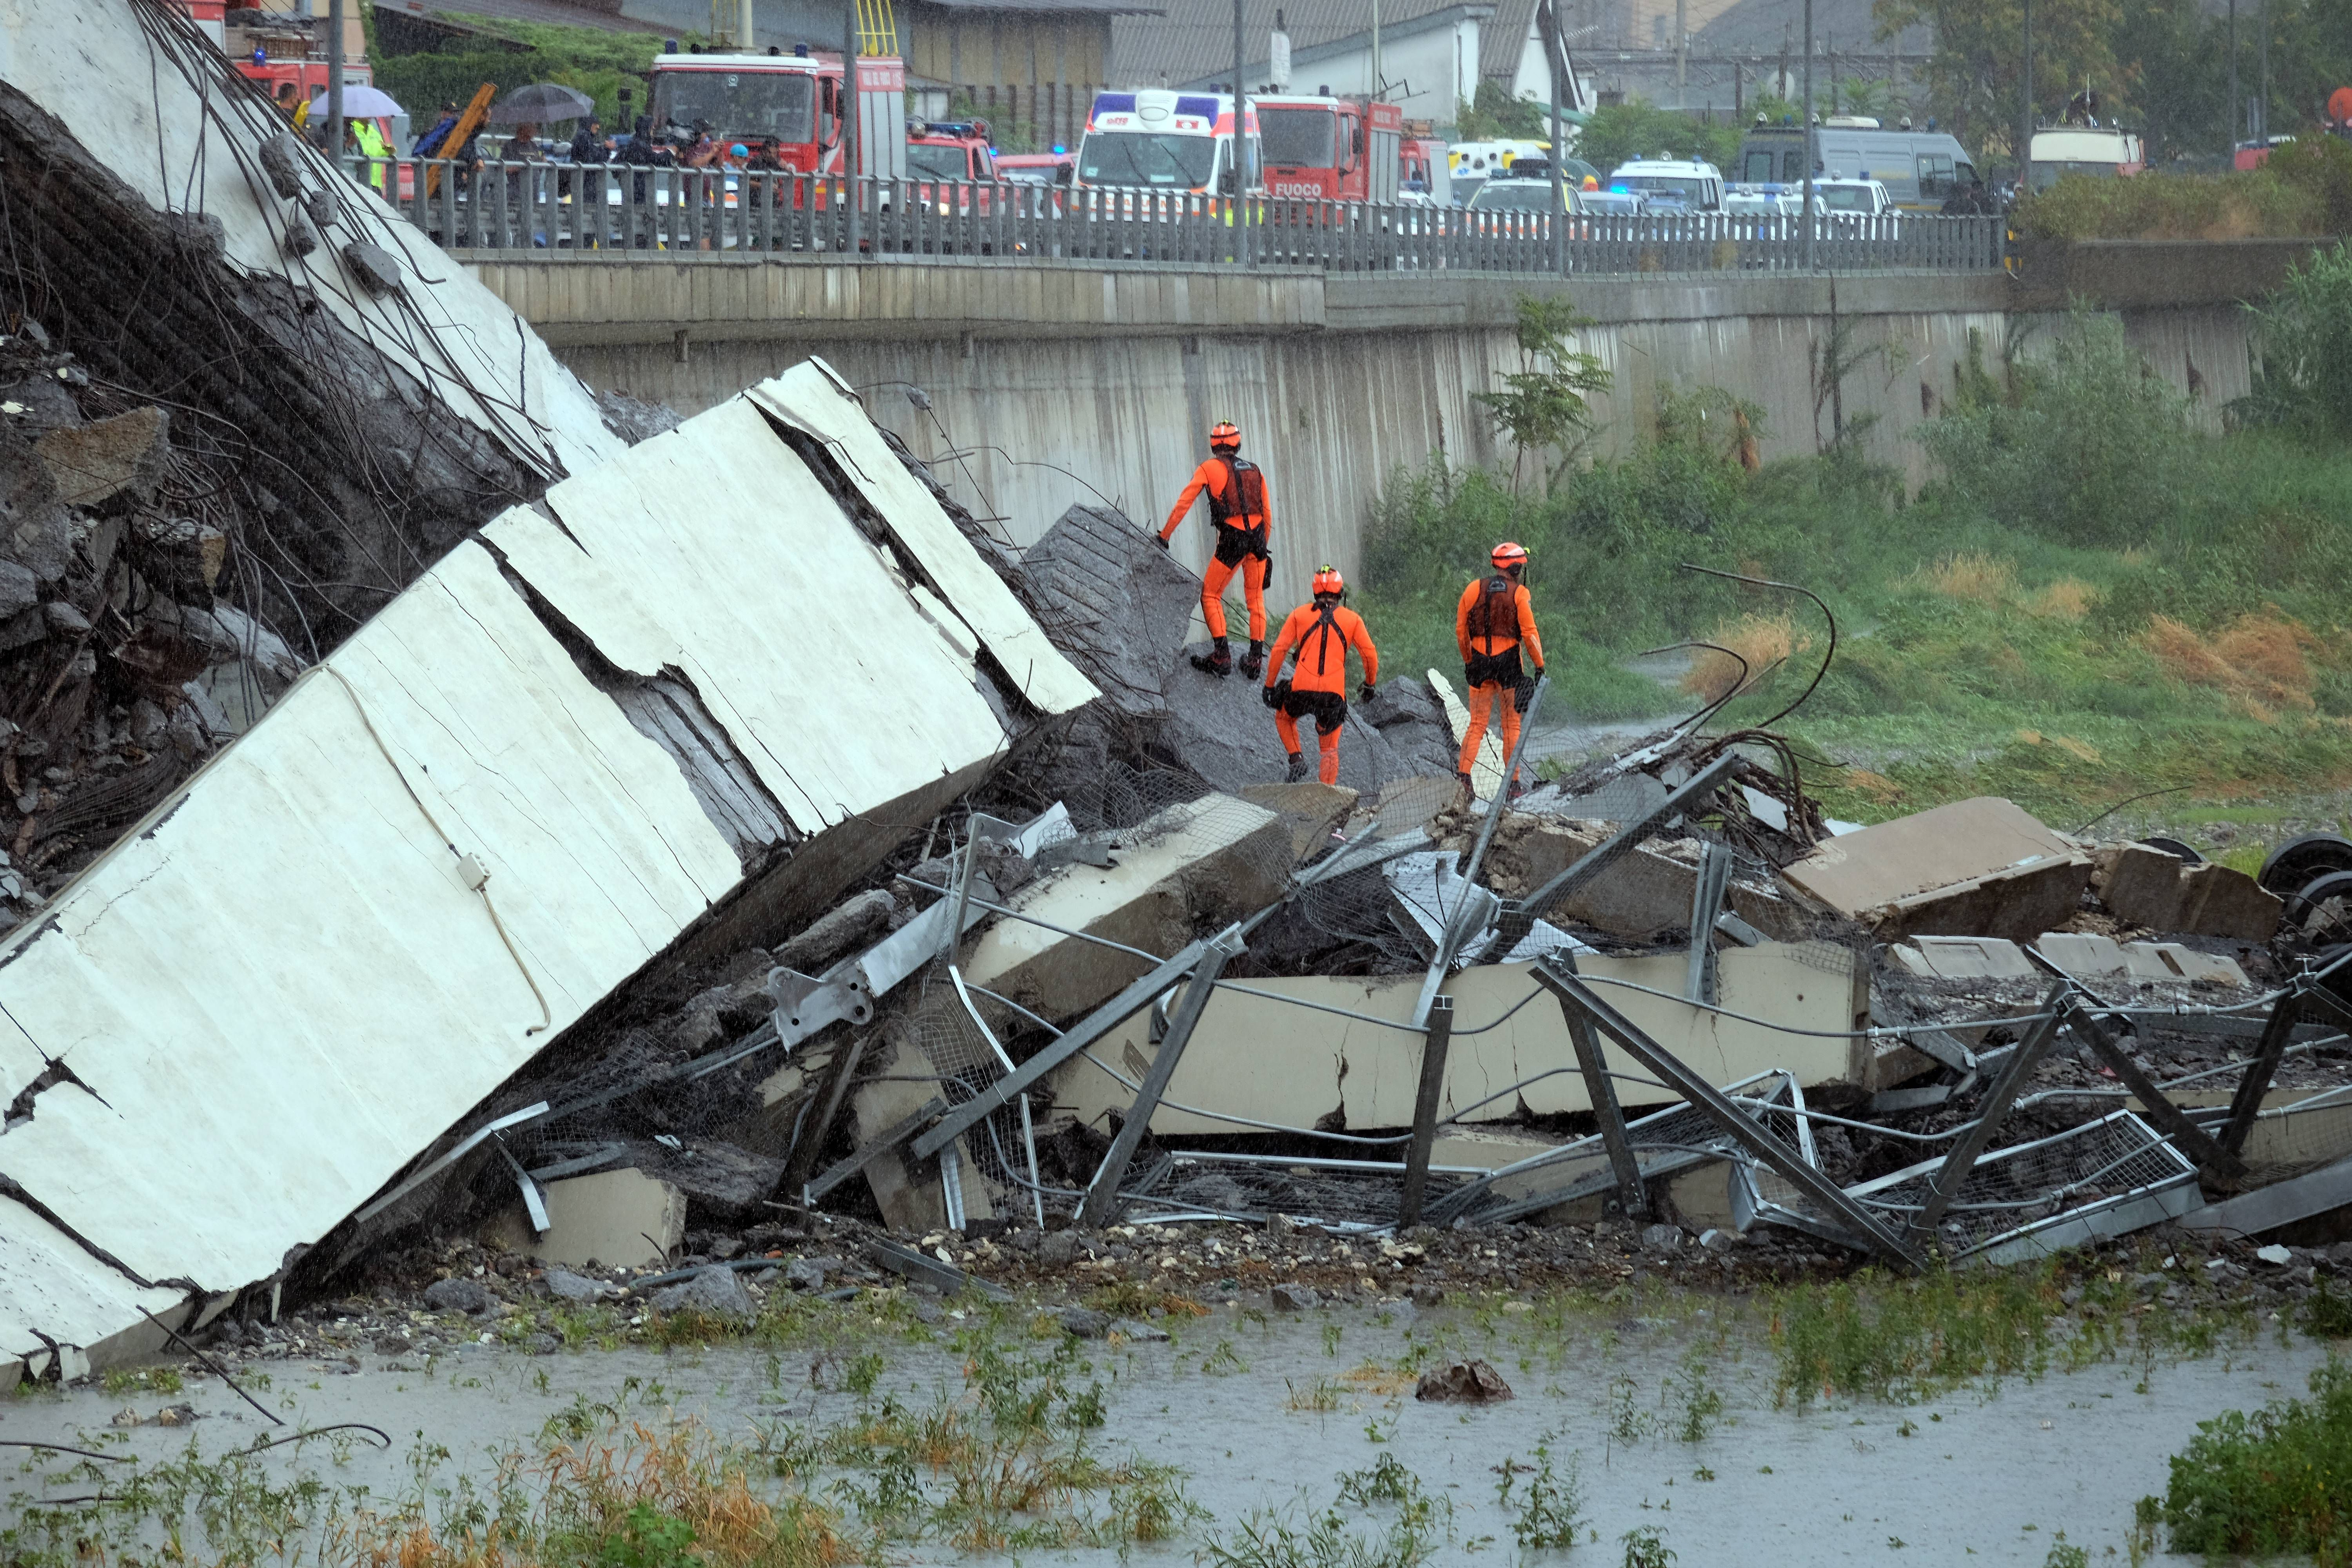 Rescuers at work at the bridge collapse in Italy.